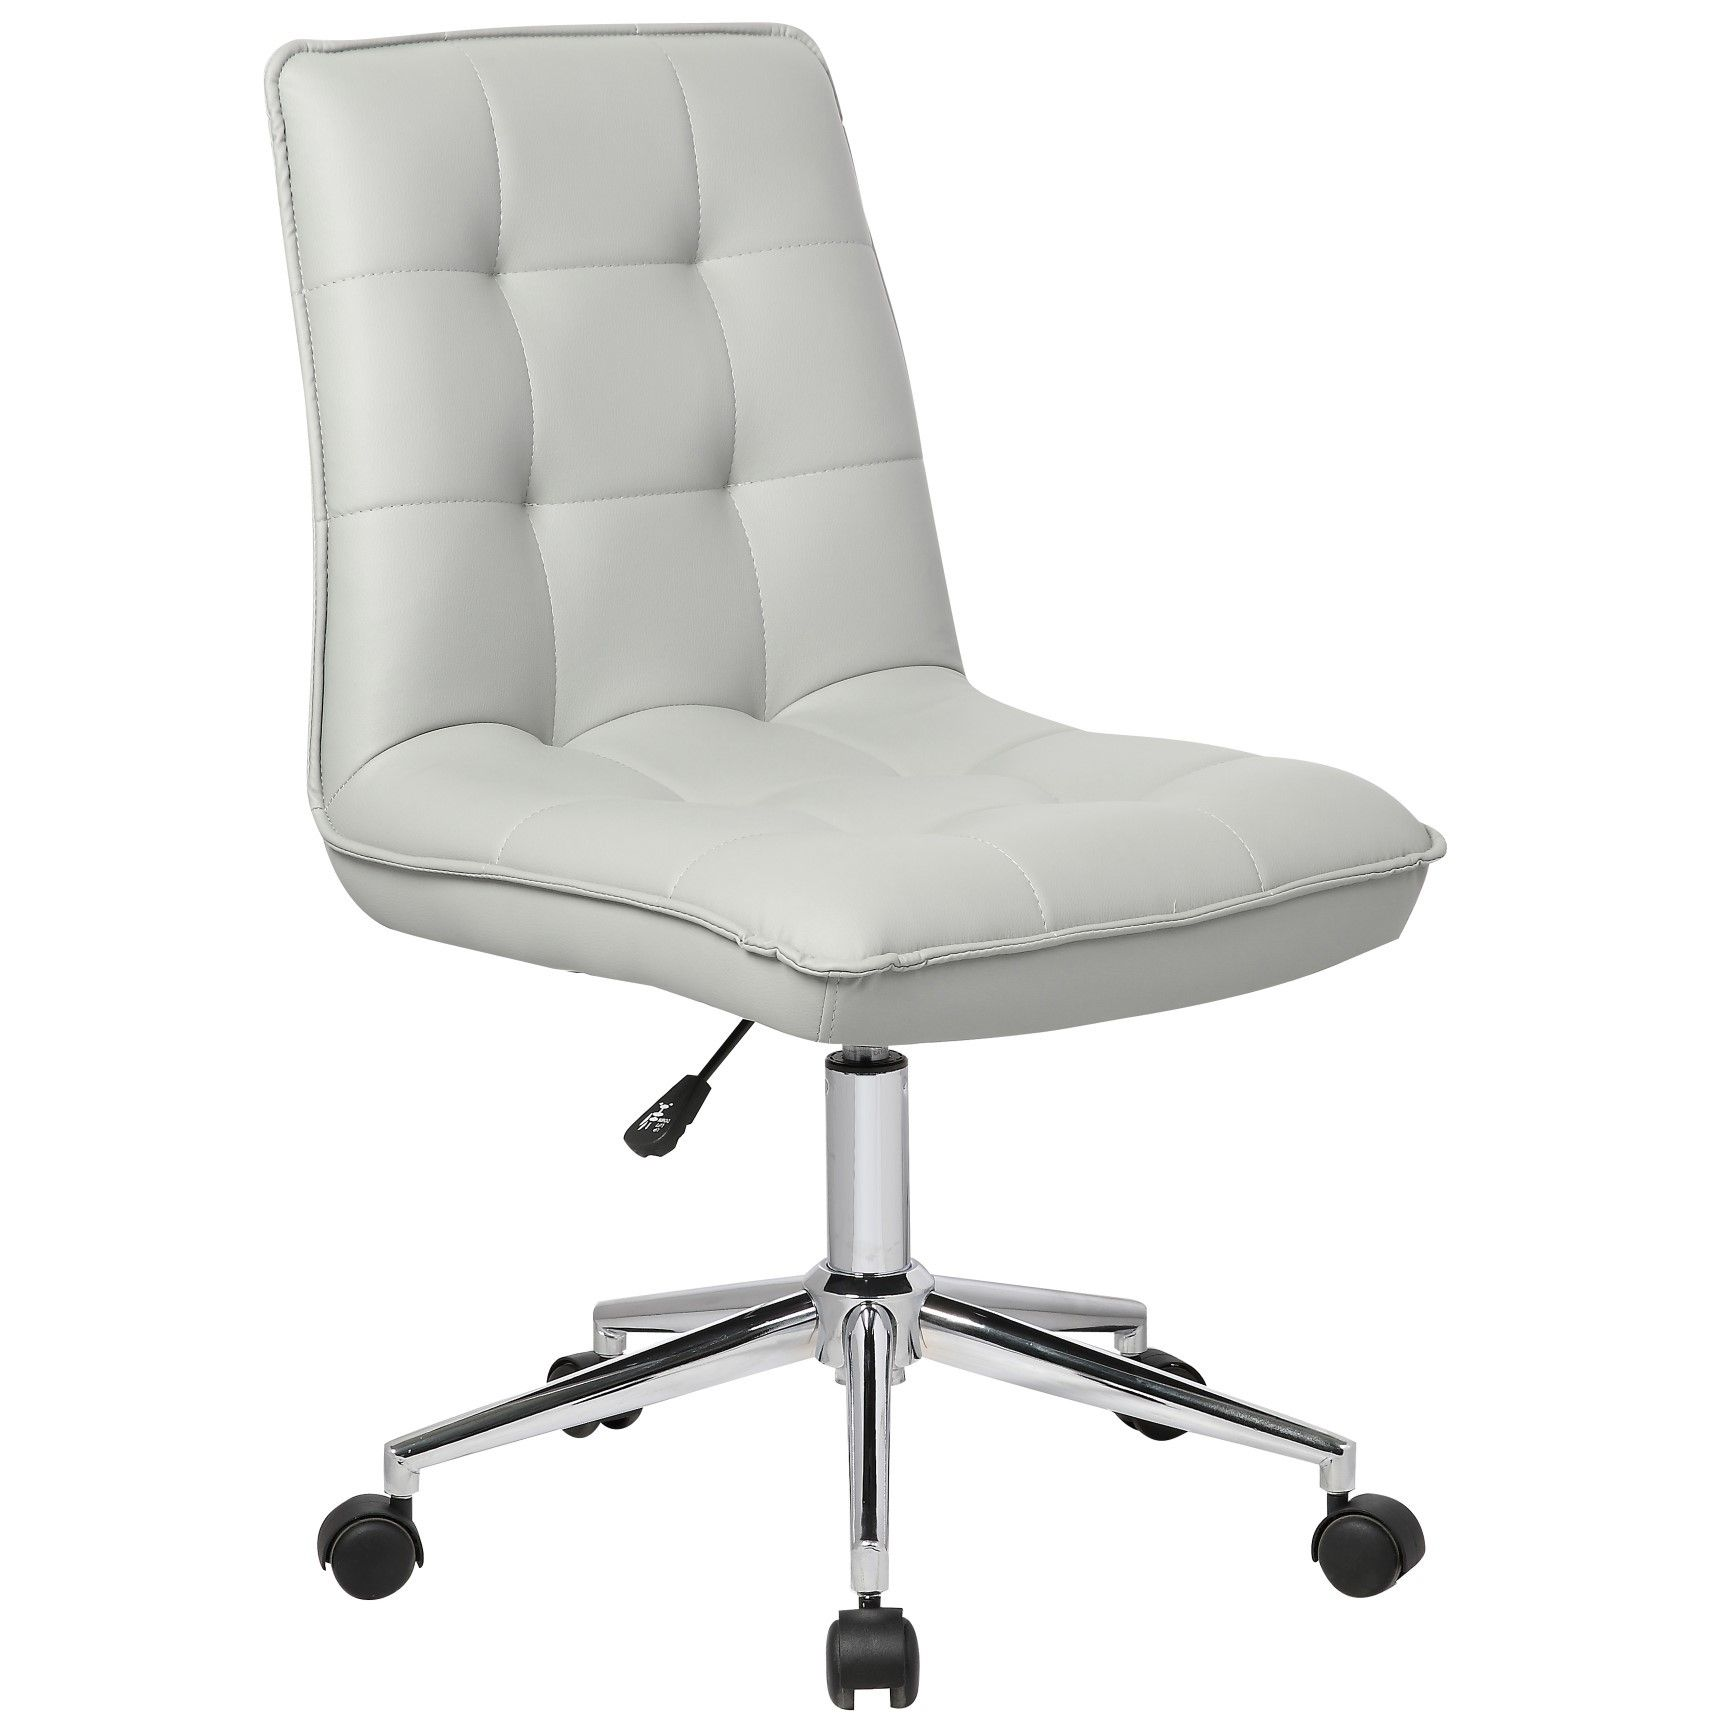 Colchester Desk Chair Adjustable office chair, Chair